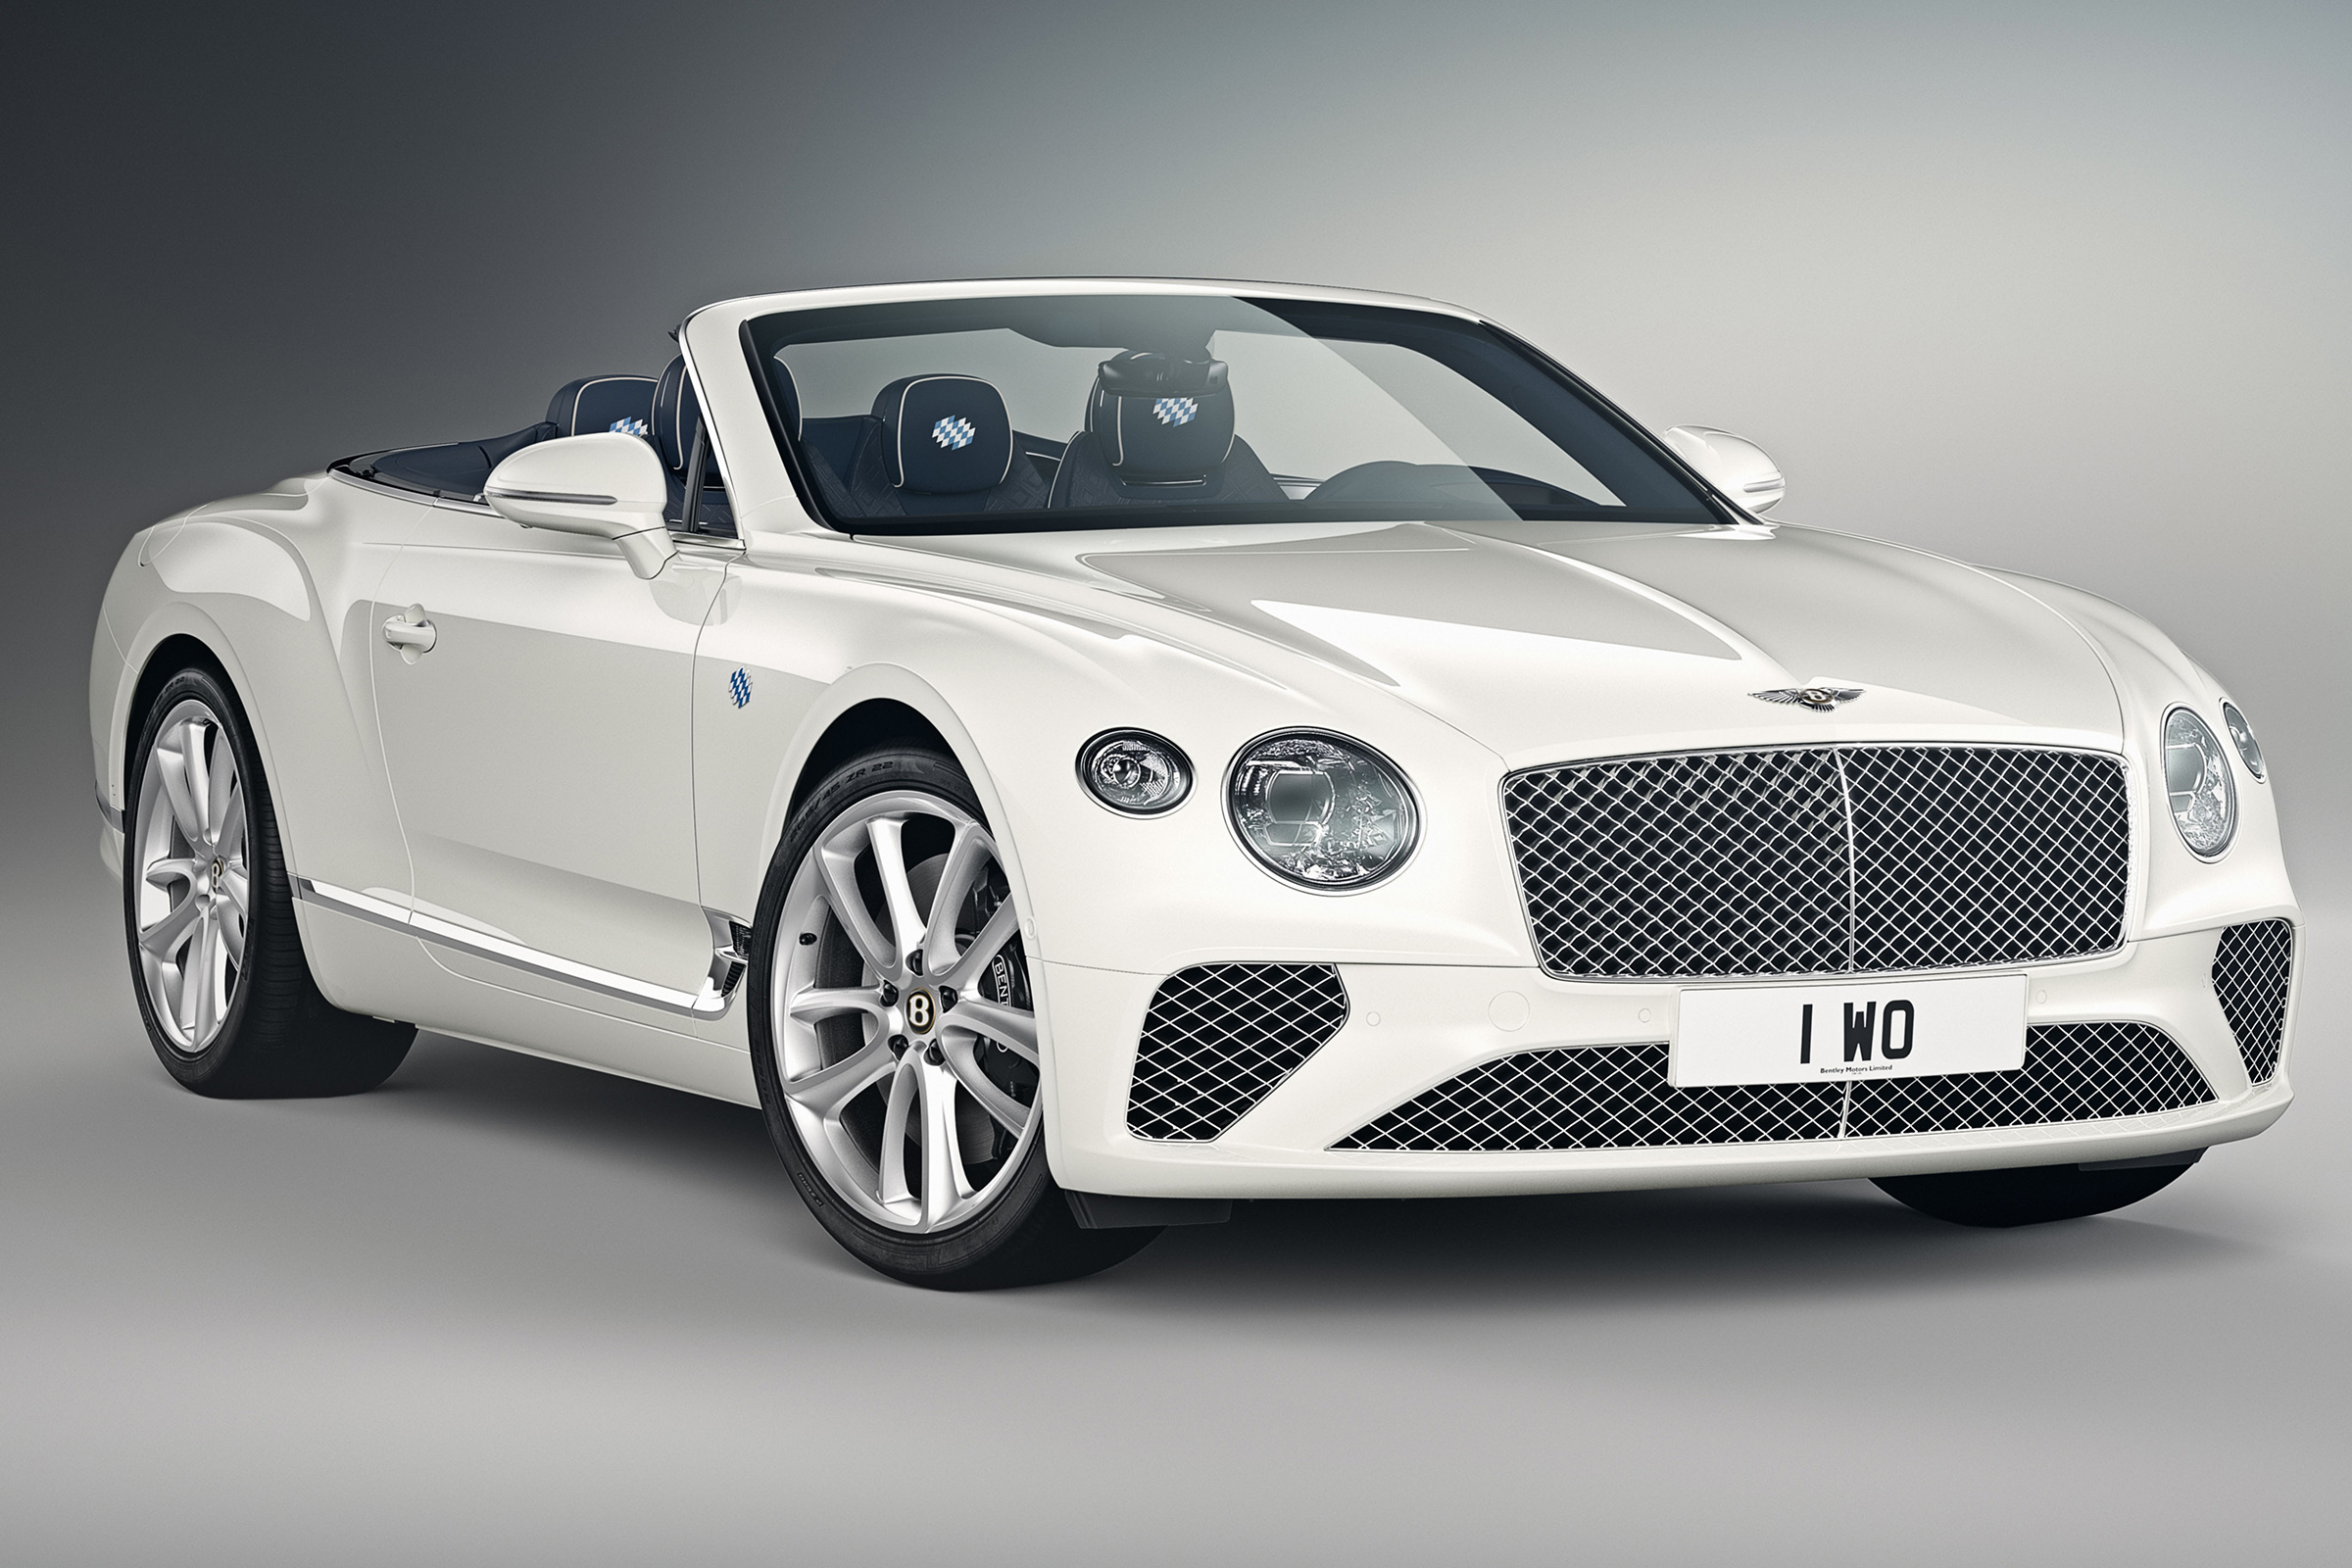 New Bentley Continental Gt Convertible Bavaria Edition By Mulliner Revealed Auto Express